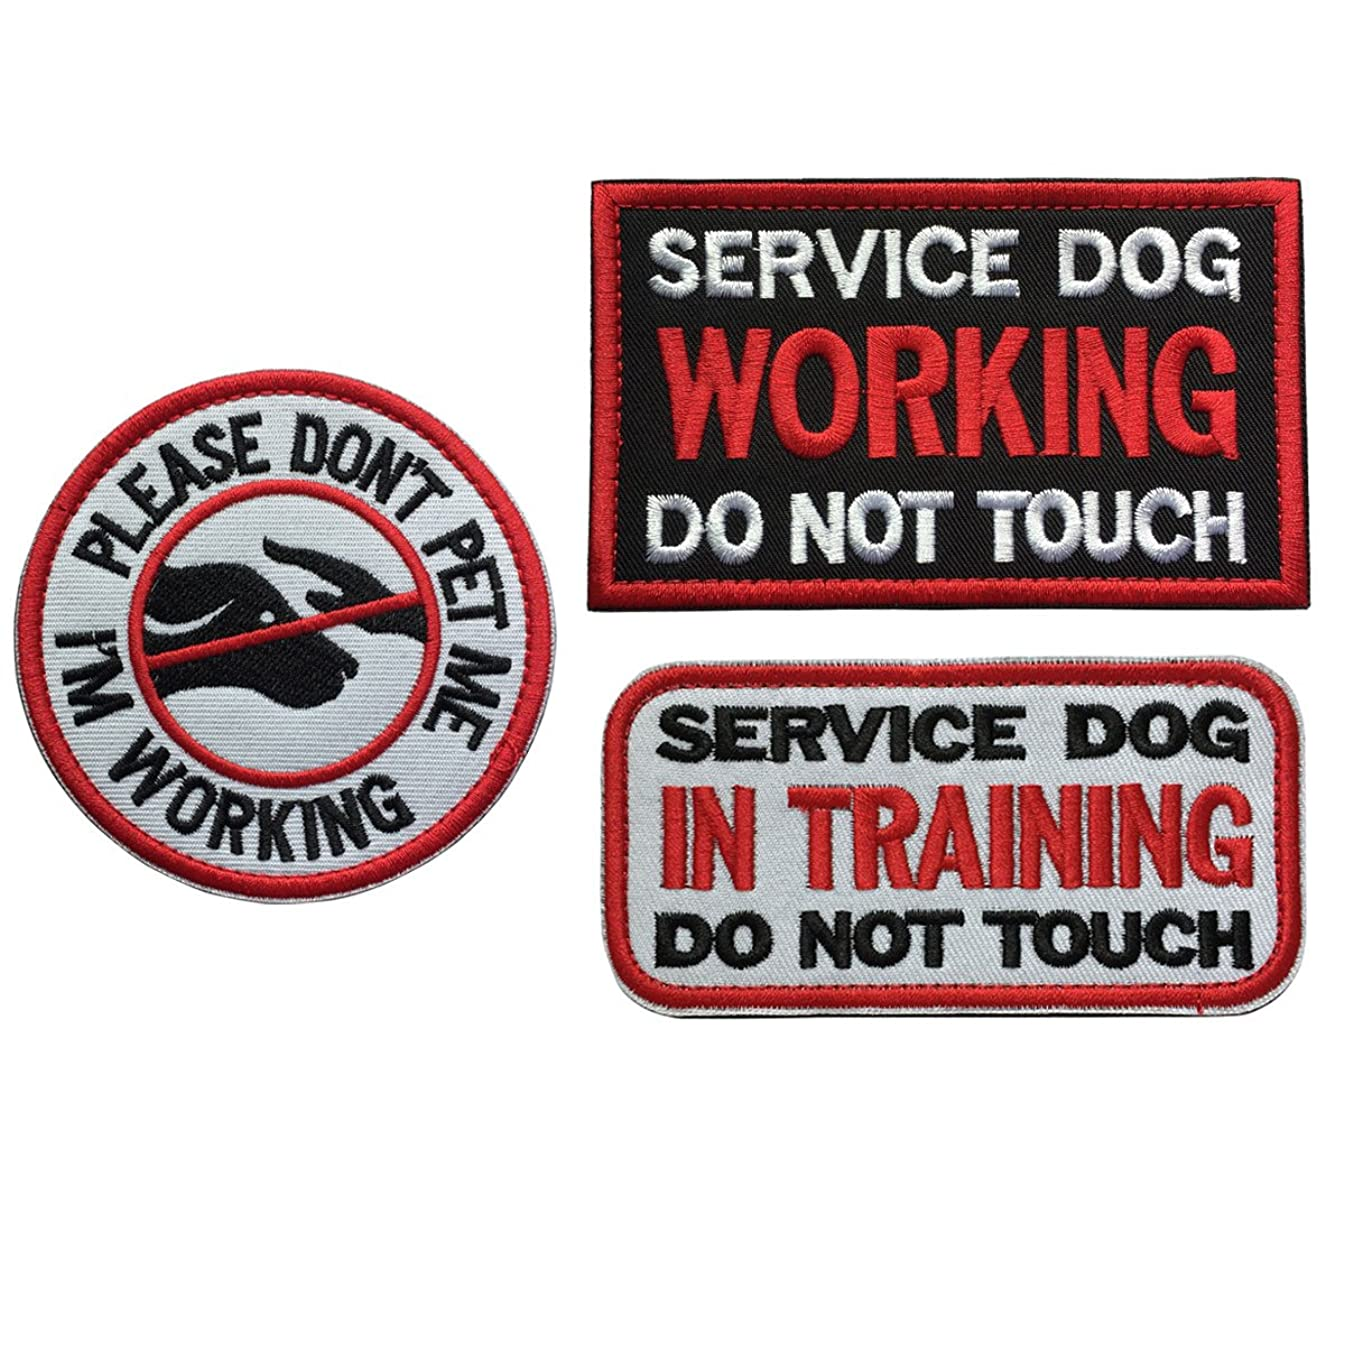 SpaceCar Bundle 3 Pieces Service Dog in Traning Working Do Not Touch Military Tactical Morale Badge Hook & Loop Fastener Decorative Patch